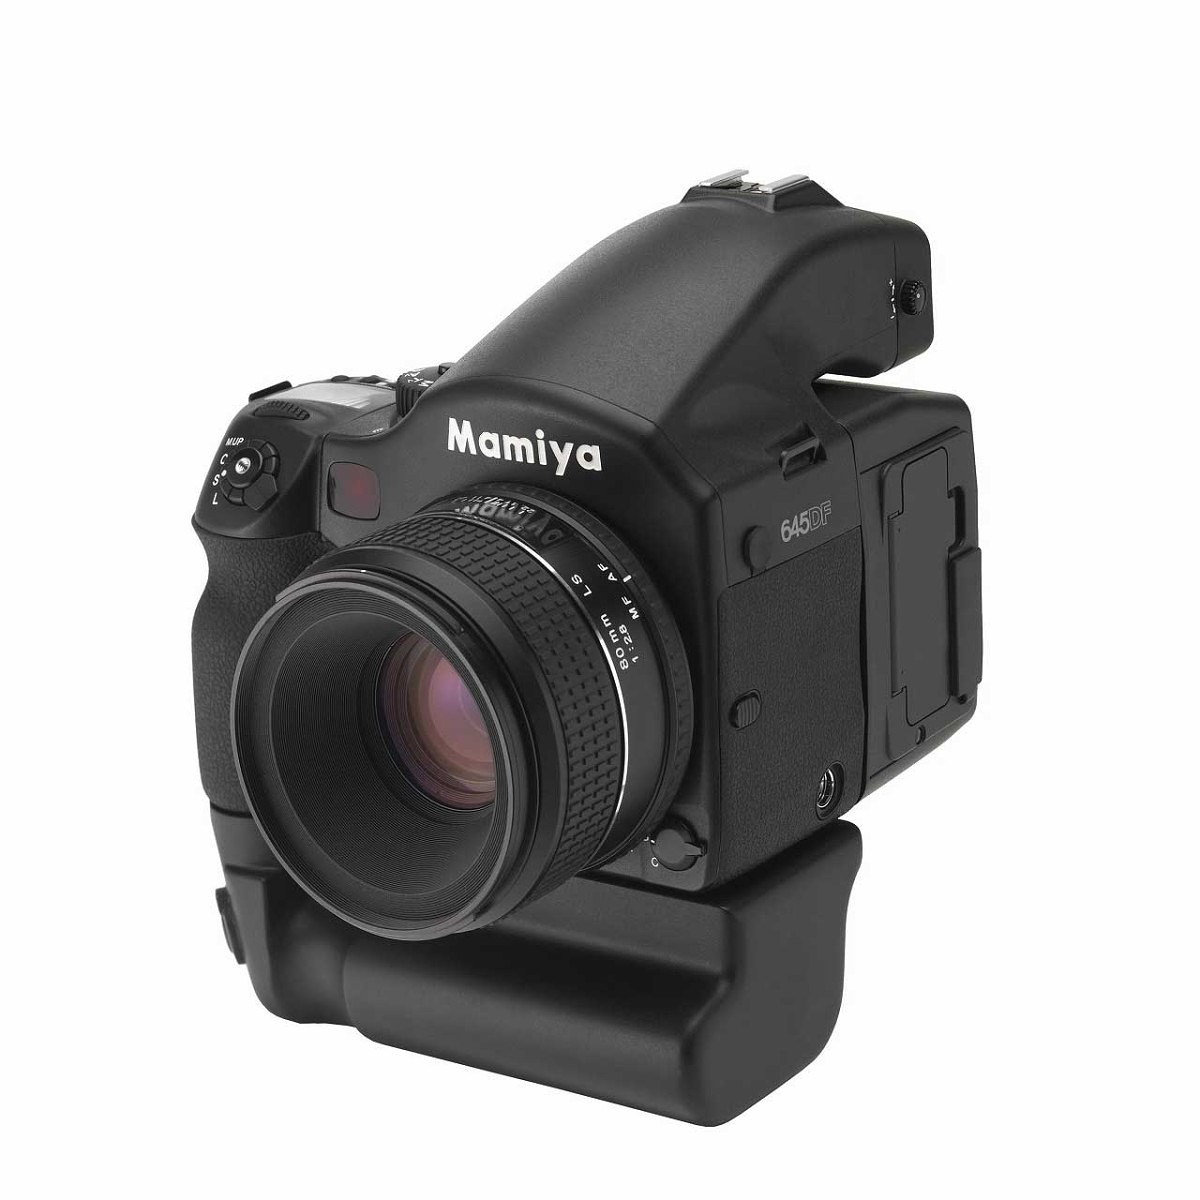 Mamiya 645DF (same as PhaseOne camera), shown with long-awaited vertical grip